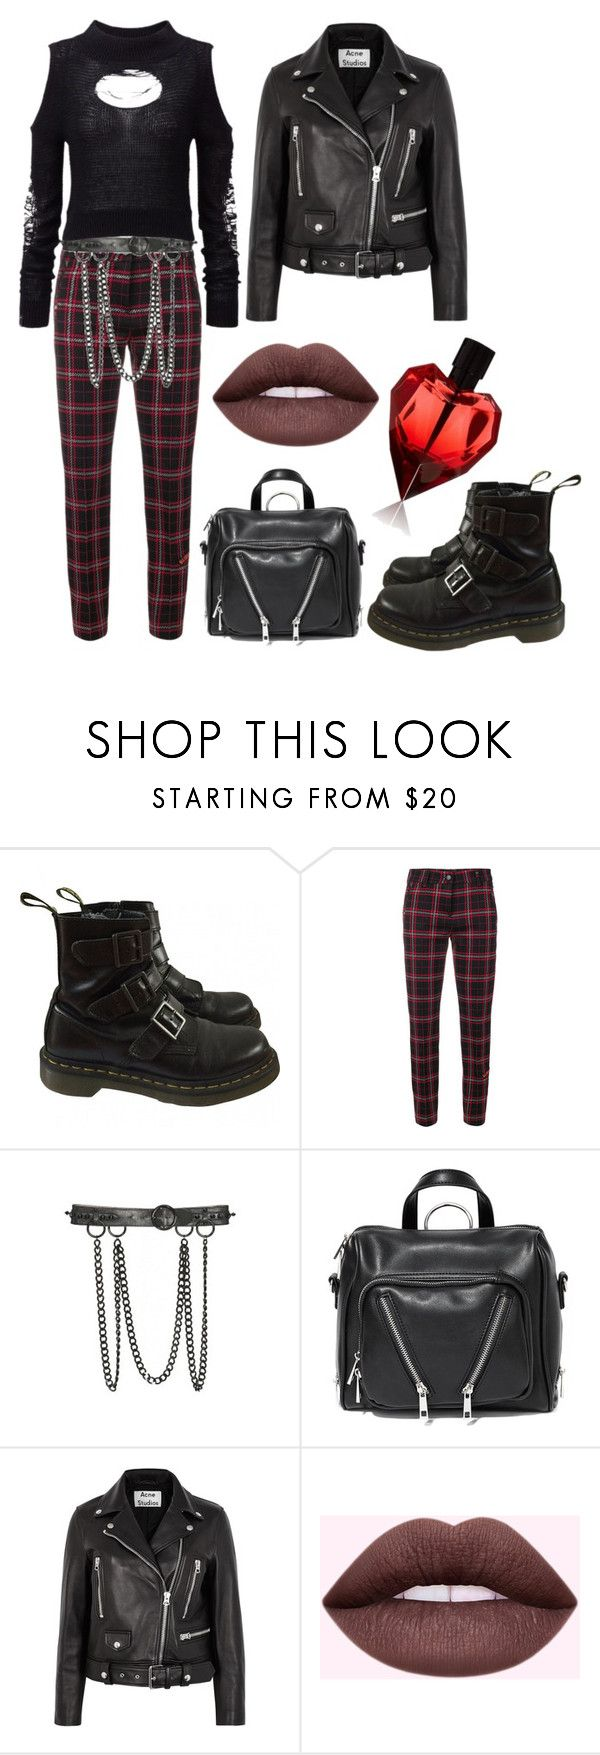 """""""Punk trend"""" by kiarametalhead ❤ liked on Polyvore featuring Dr. Martens, Cambio, Alexander McQueen, Current Mood and Acne Studios"""